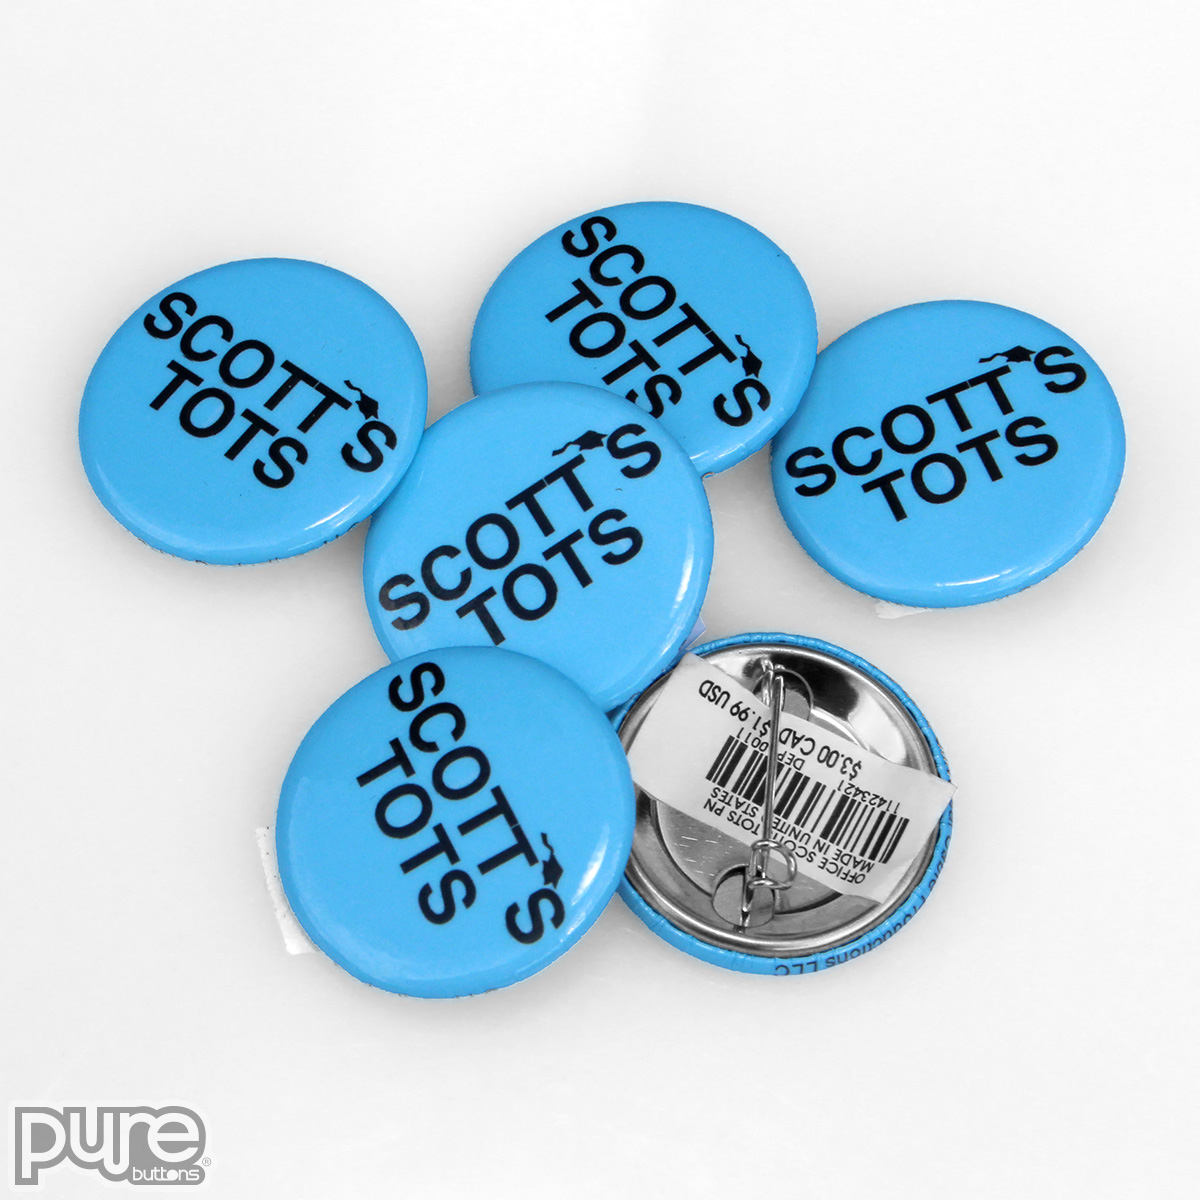 The Office NBC Official Merchandise - Scott's Tots Custom Button Pins